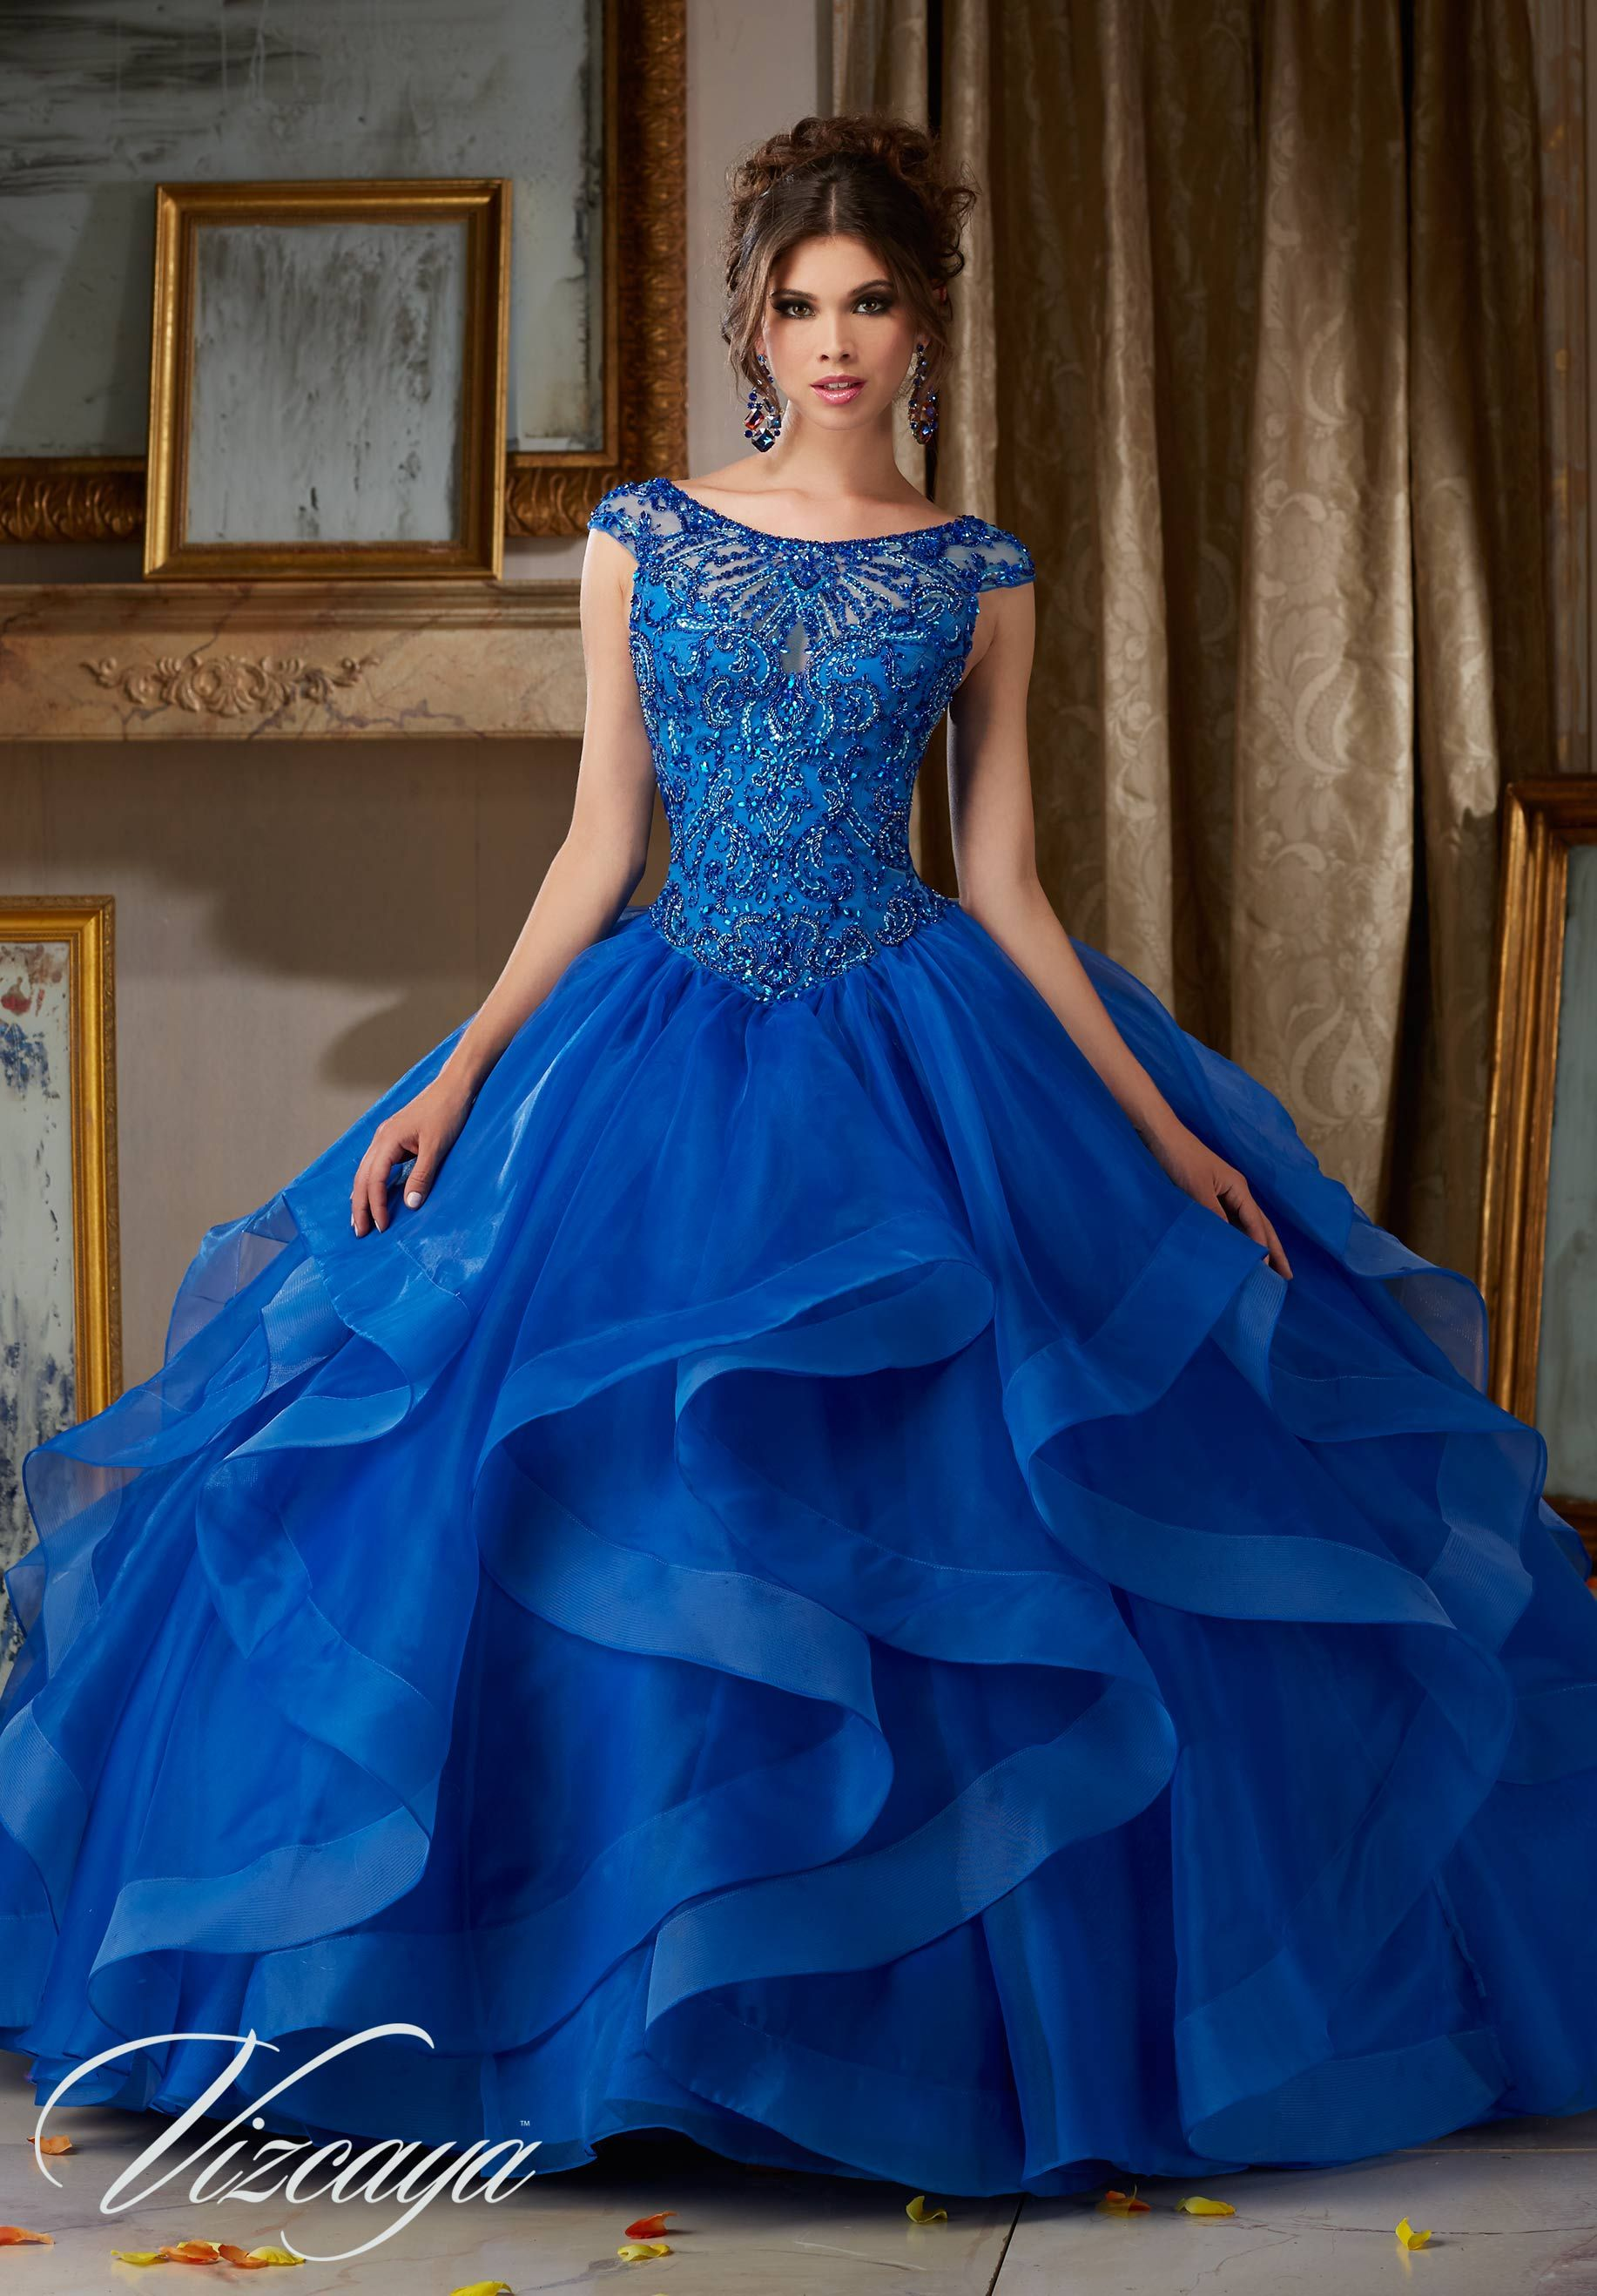 Organza Quinceañera Dress with Jeweled Beaded Bodice and Bateau ...